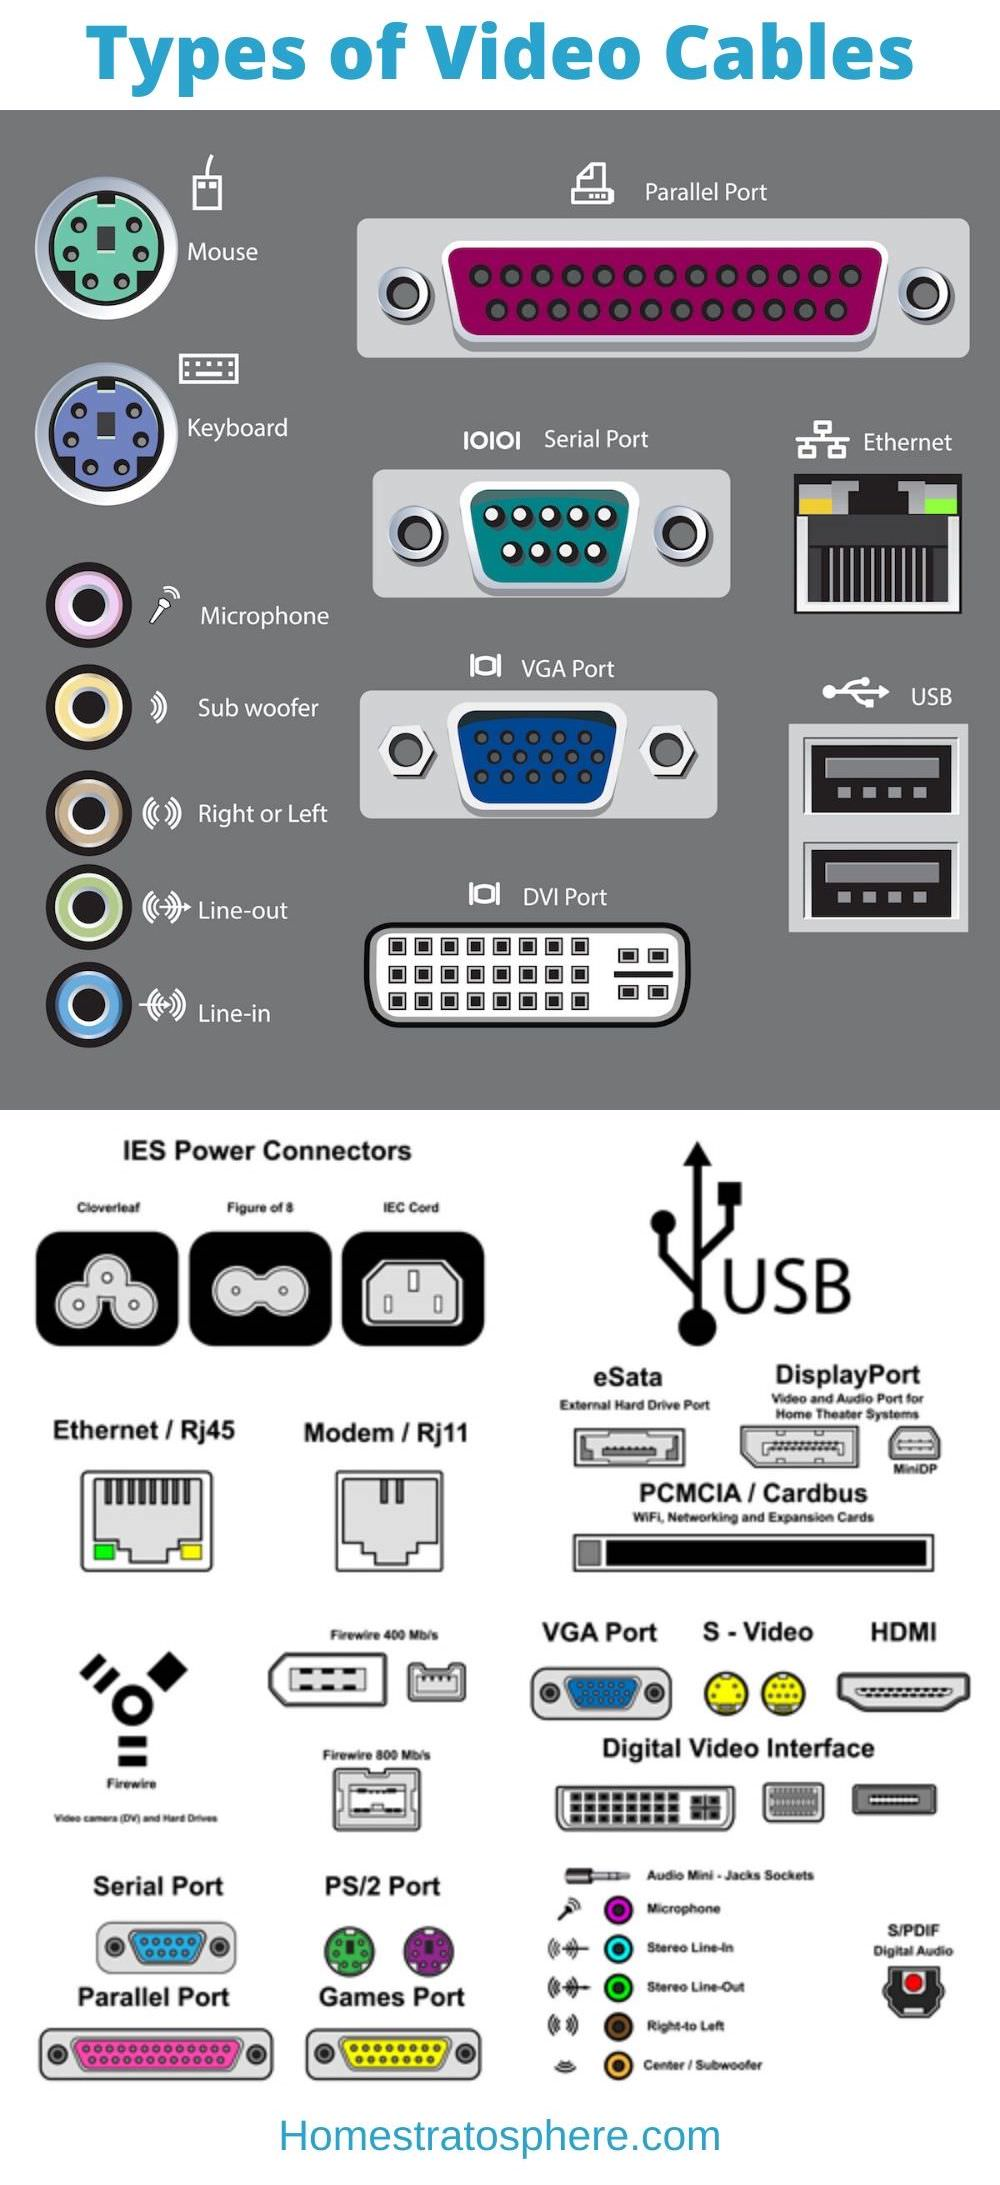 Types of video cables chart